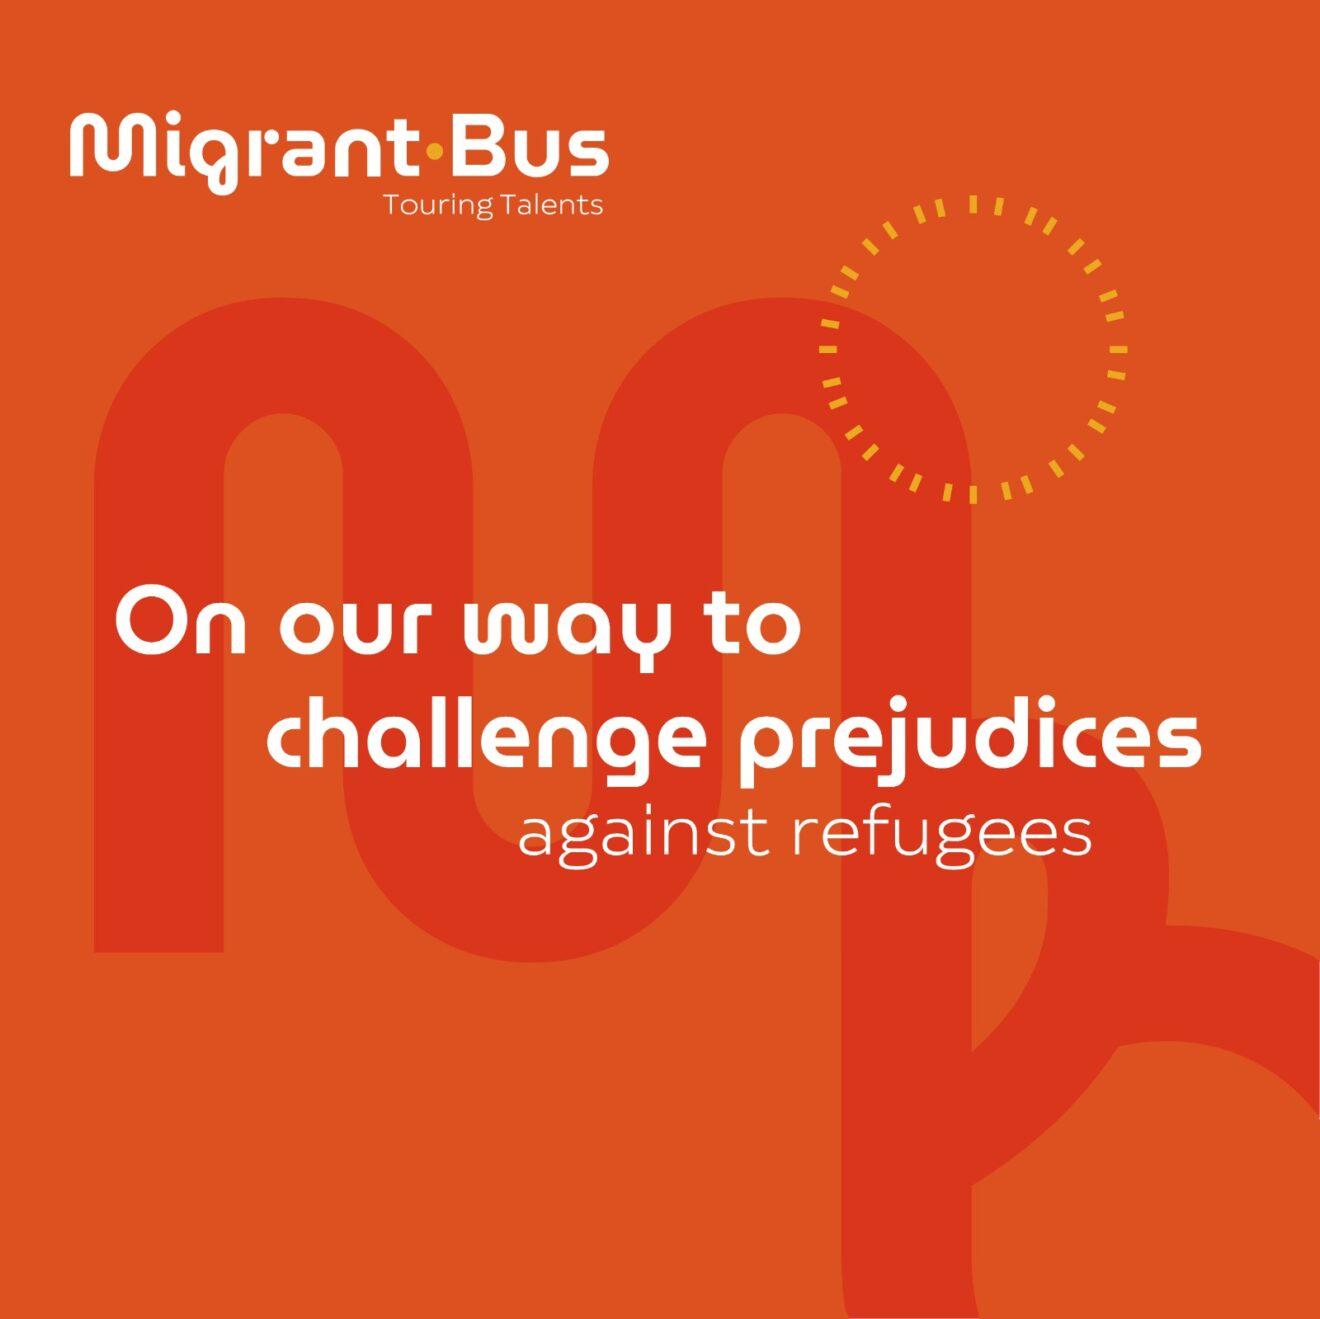 Migrant Bus - on our way to challenge prejudices against refugees